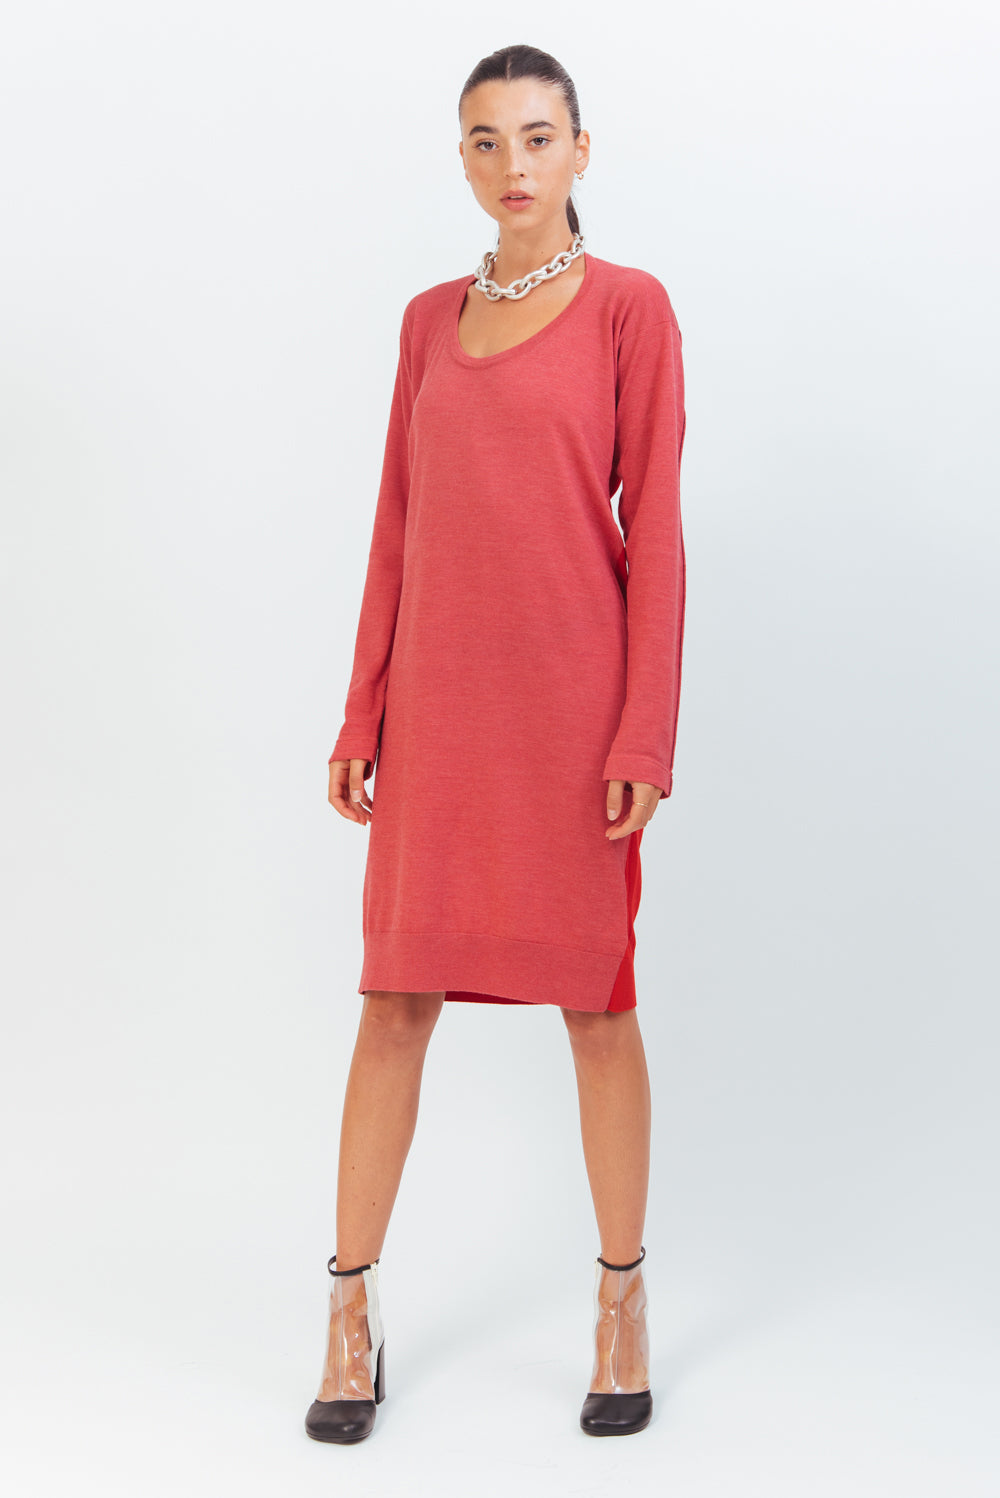 RED WEAR TWO WAY KNIT DRESS